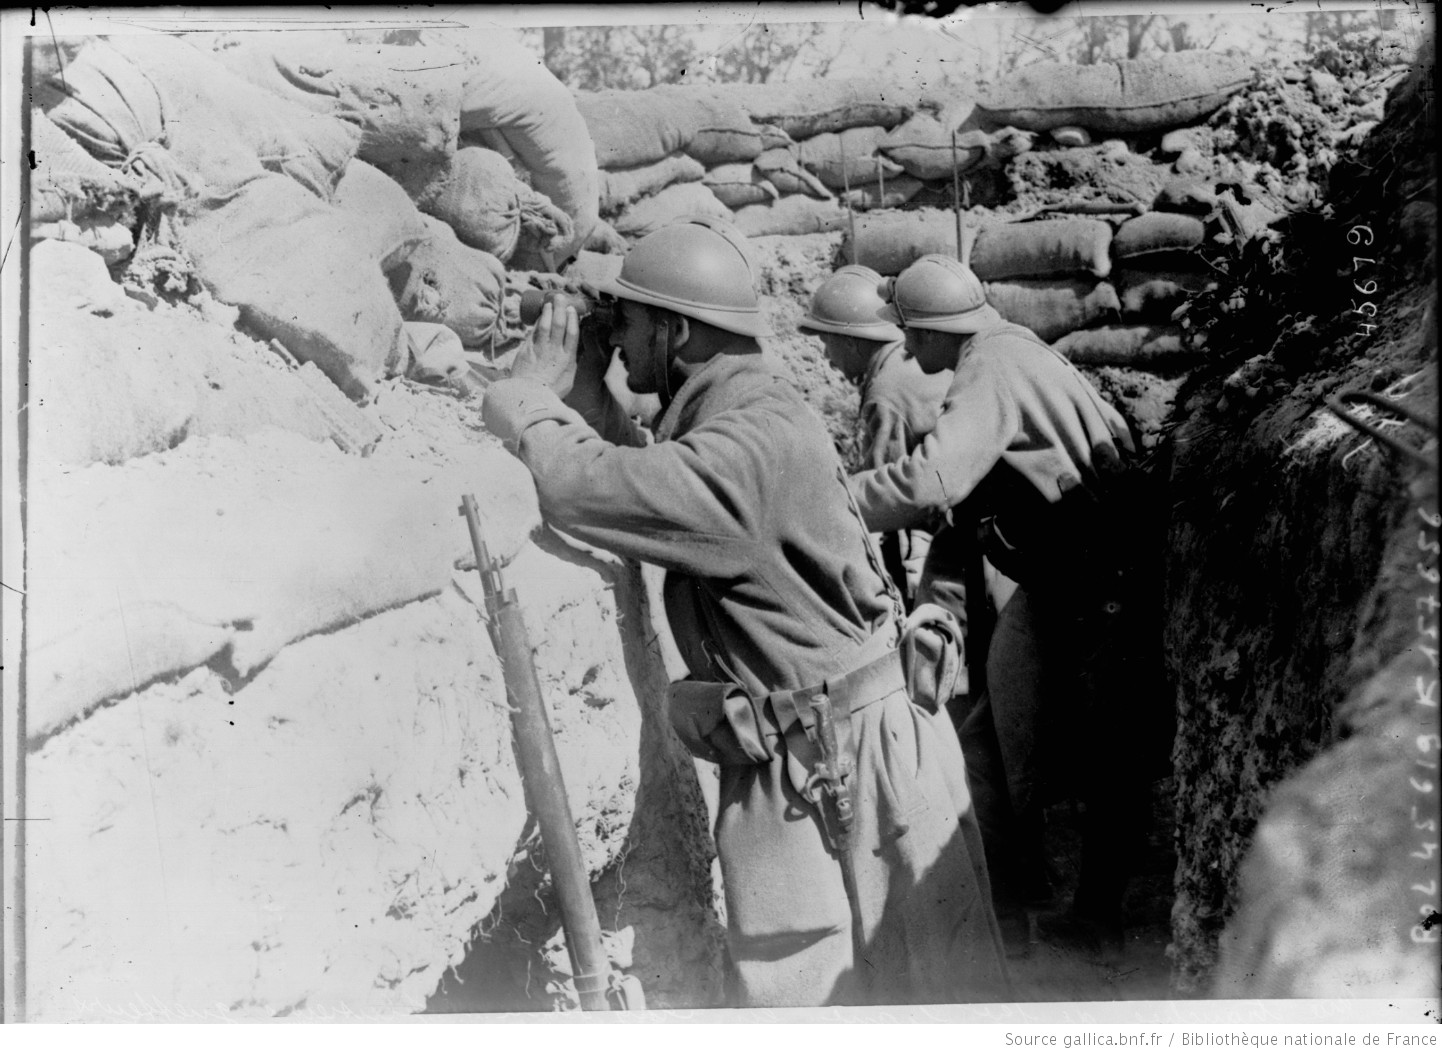 French soldiers at a Listening Post in the Argonne sector, 1915. #WW1 #1GM https://t.co/heGQTitDCt